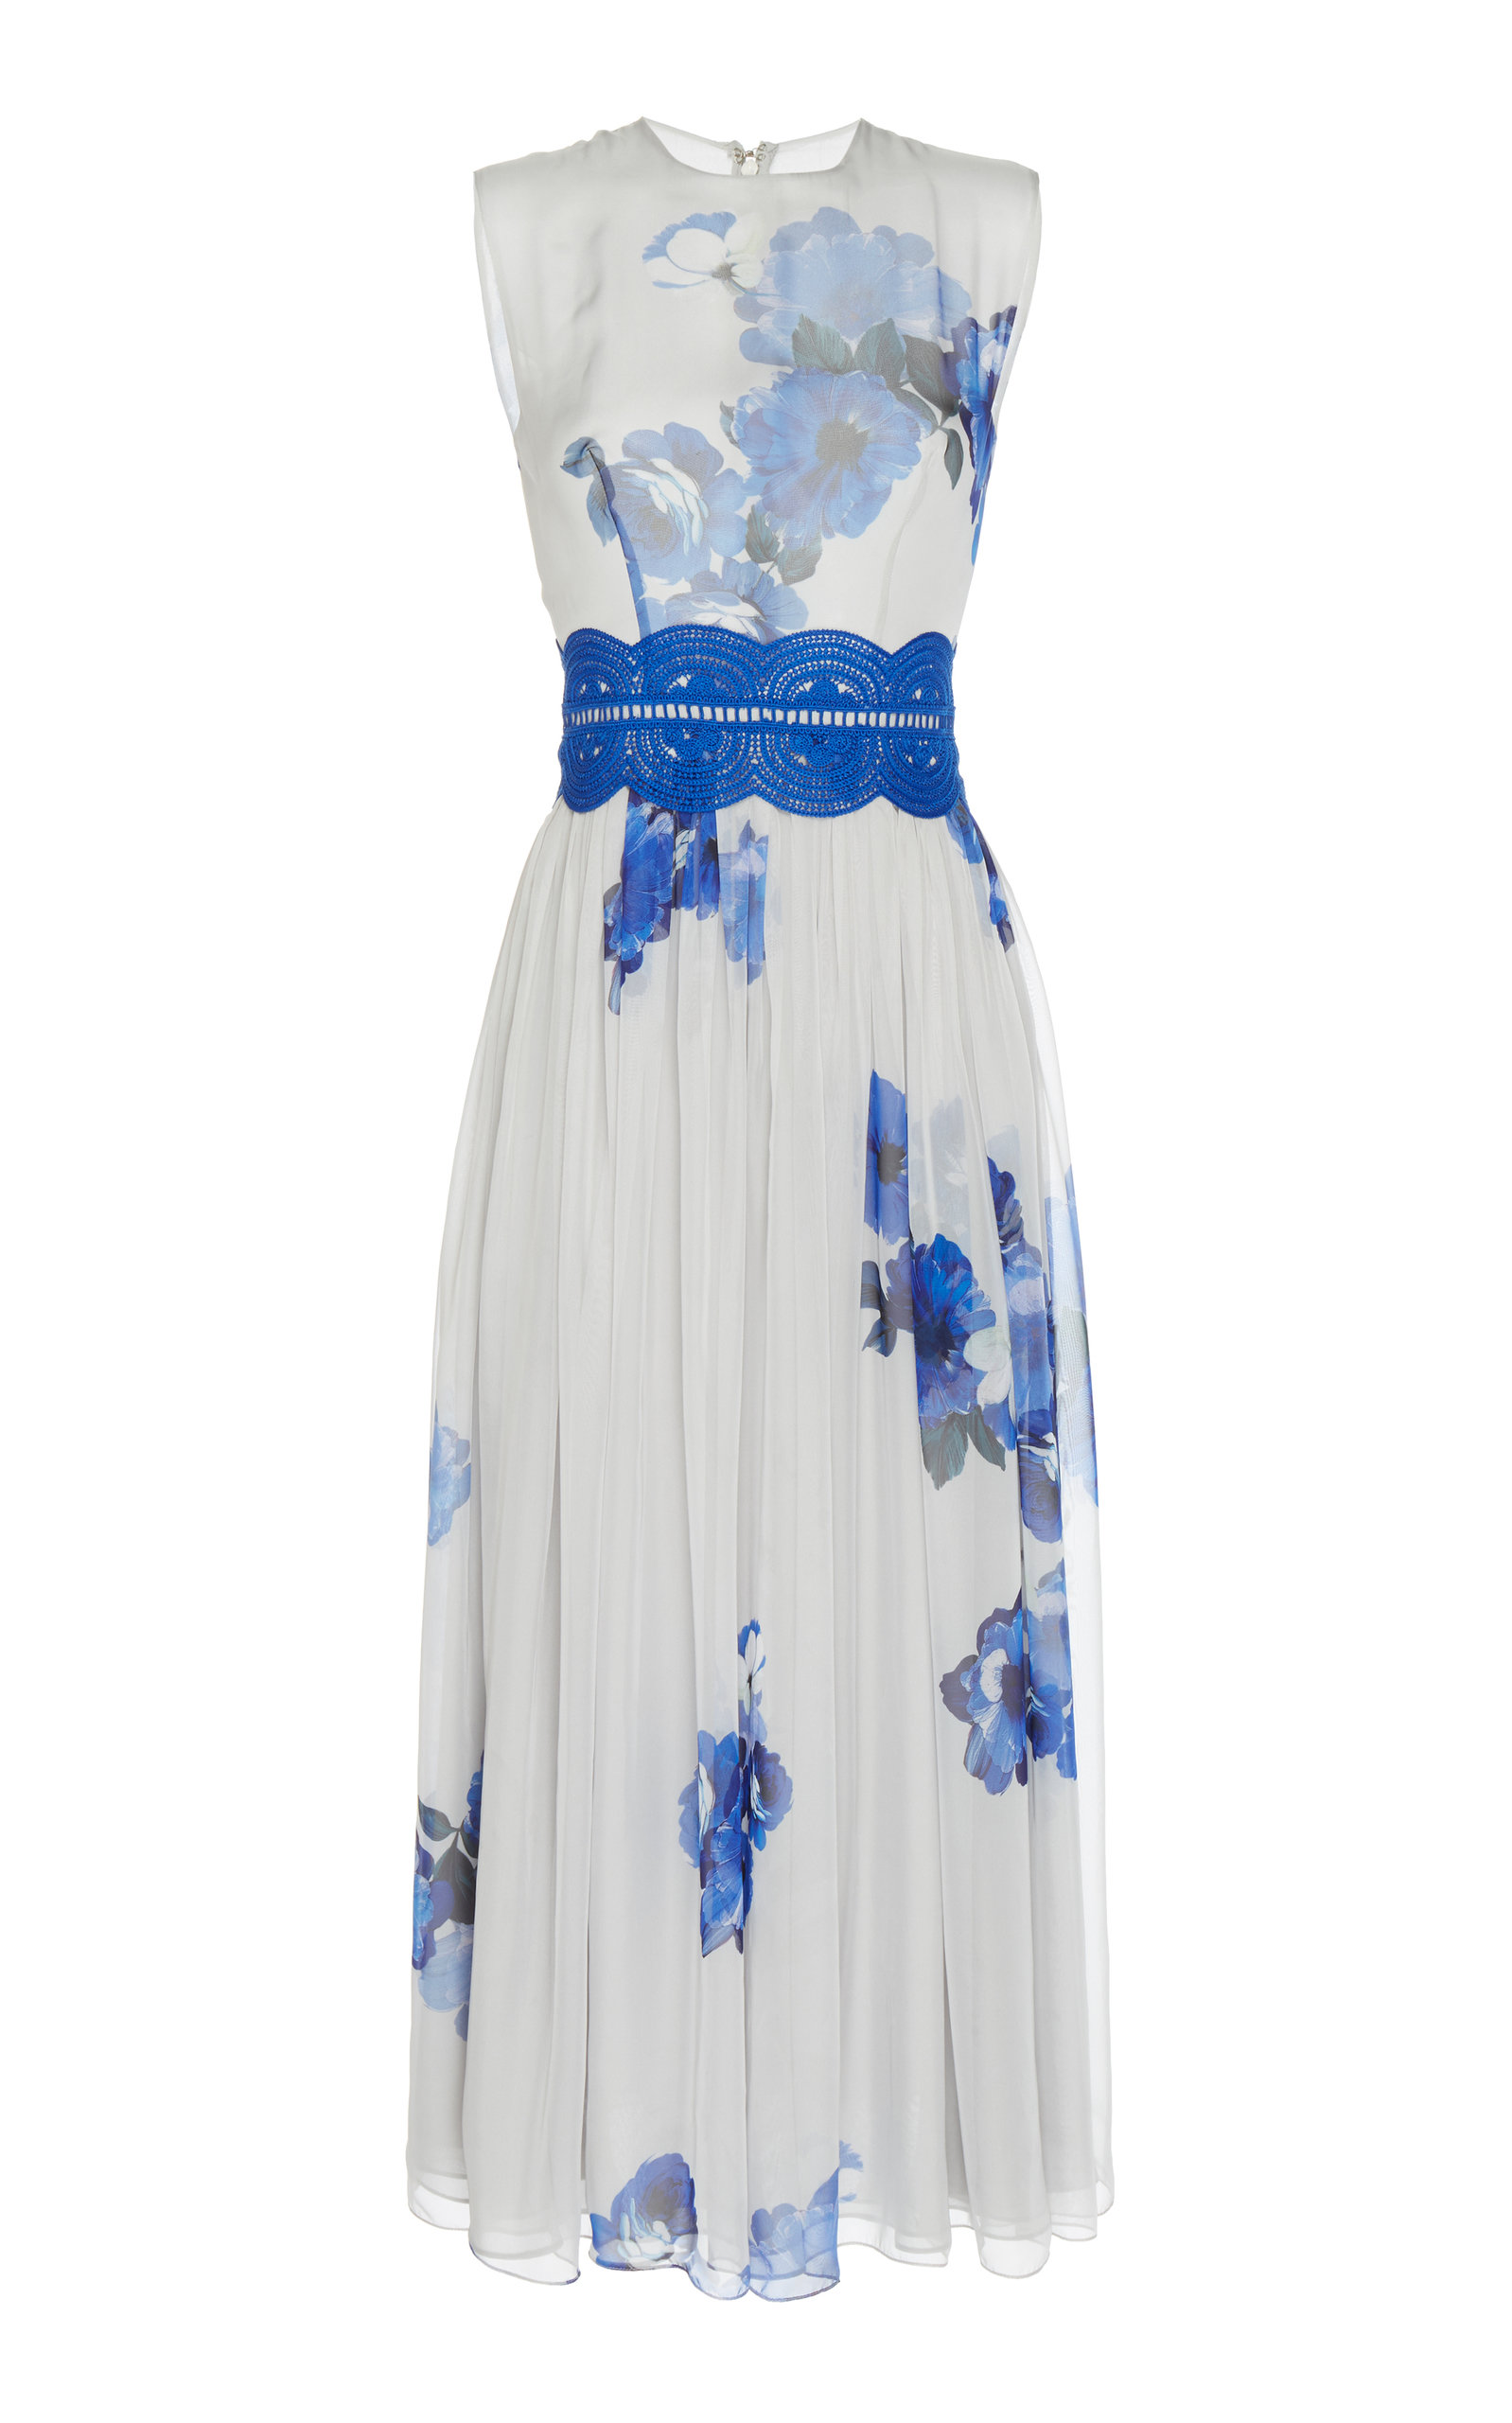 02e504b4112 CostarellosSleeveless Printed Chiffon Midi Dress. CLOSE. Loading